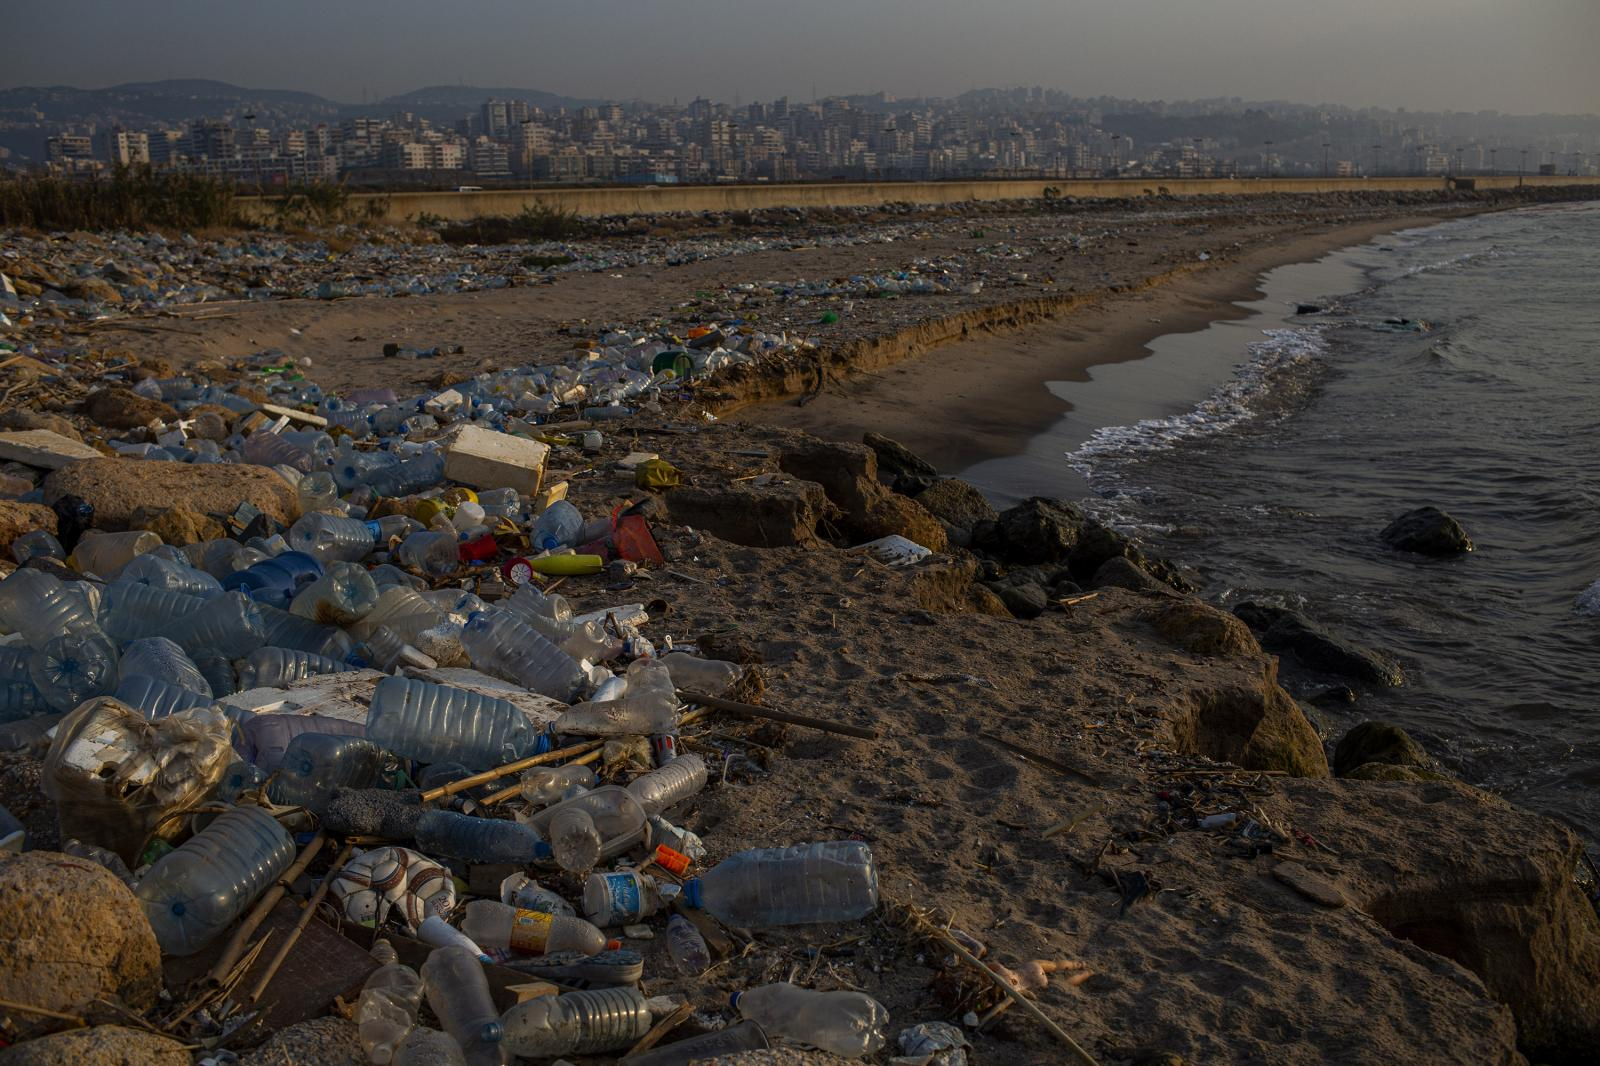 Beirut, Lebanon. November 9th, 2019. A beach flooded with garbage in Ouzai, on the outskirts of Beirut. The garbage problem has long been a symbol of a failure of Lebanese politics, one that activists say has its roots in the time shortly after the country's civil war, which ended in 1990. Diego Ibarra Sánchez for THE NEW YORK TIMES